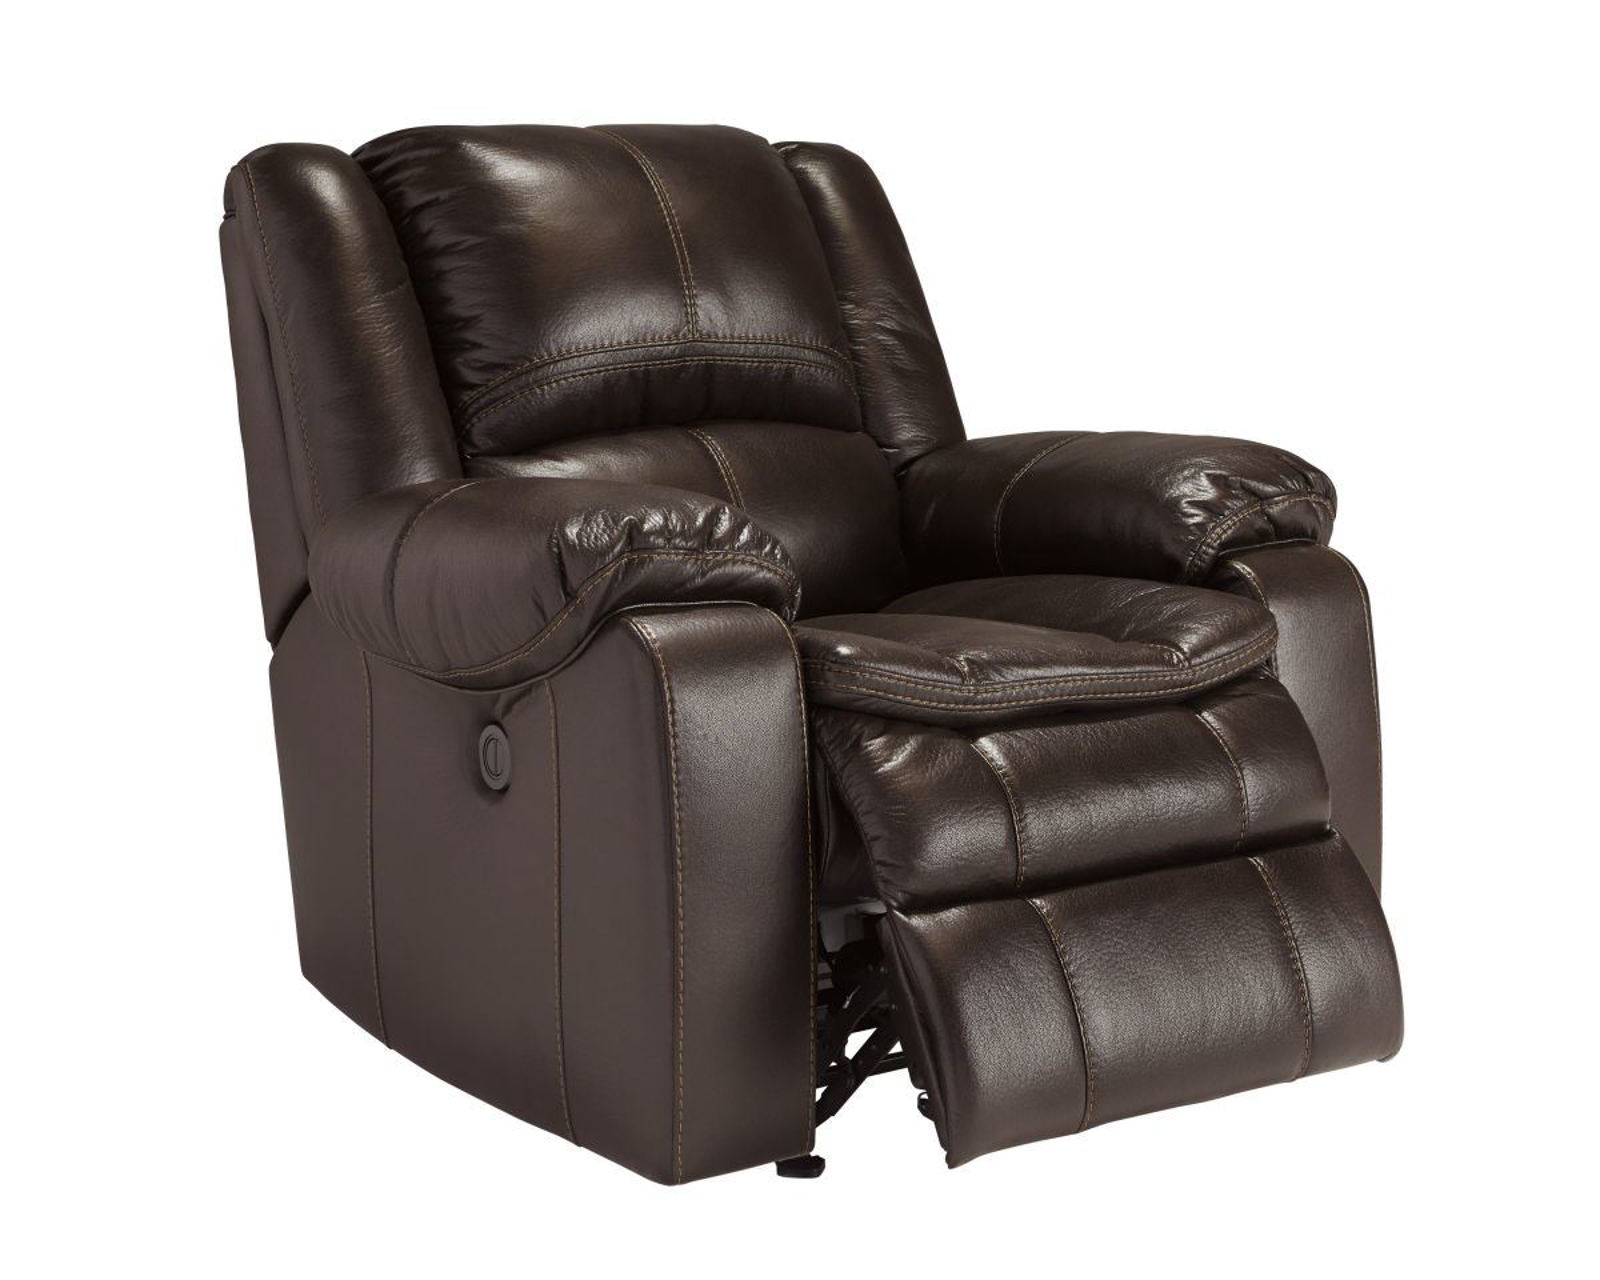 Picture of Long Knight Recliner